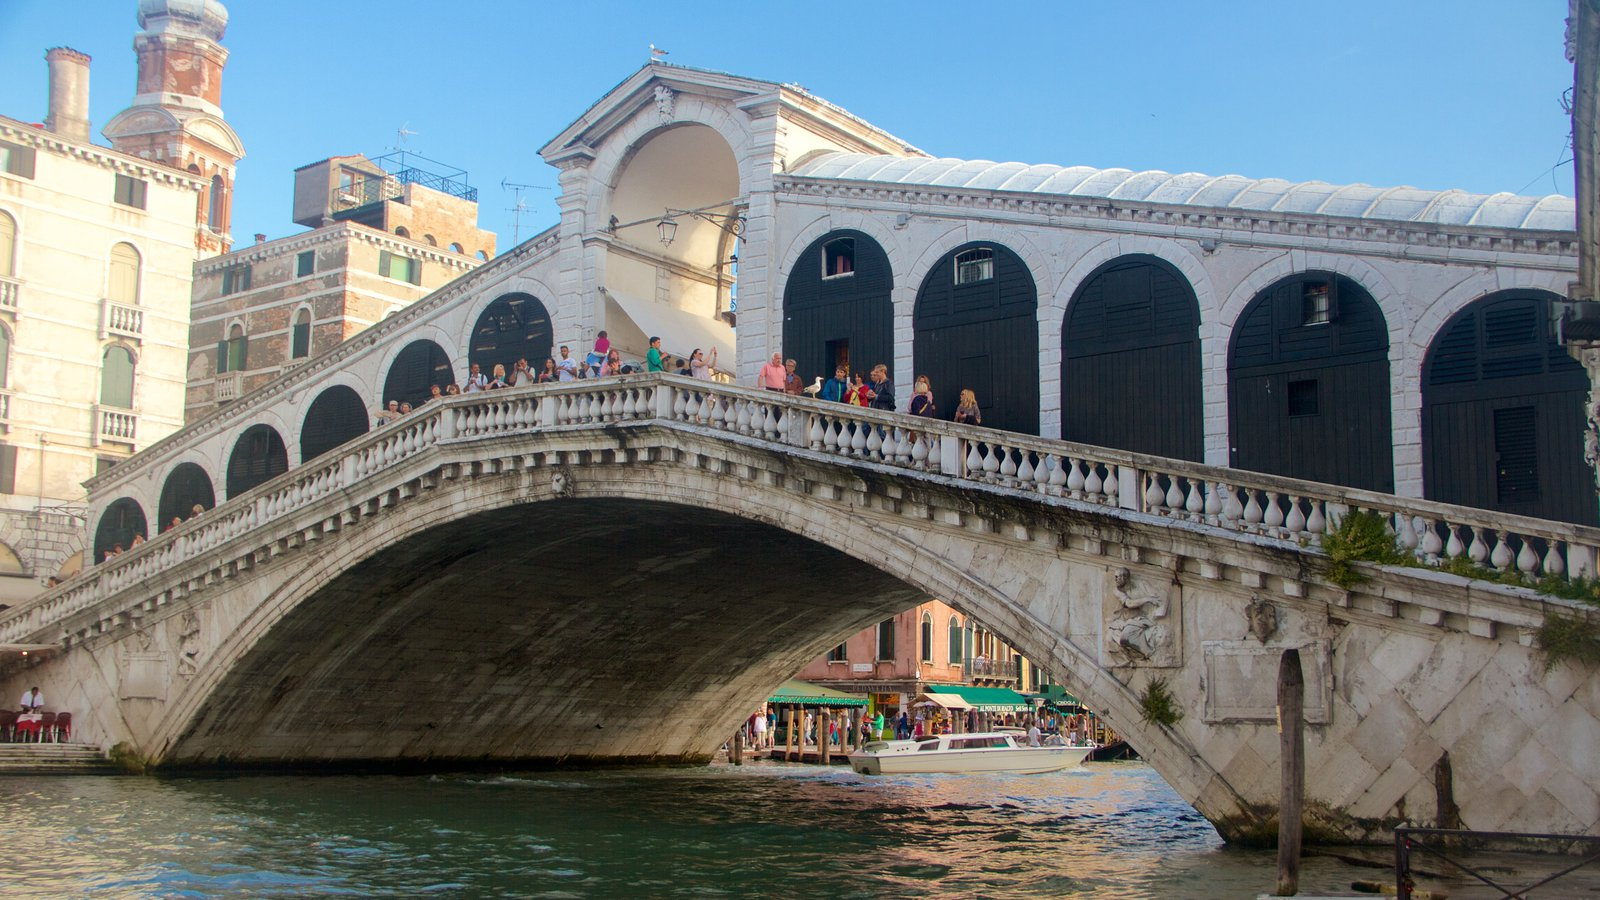 Rialto Bridge which includes a lake or waterhole, heritage architecture and a bridge